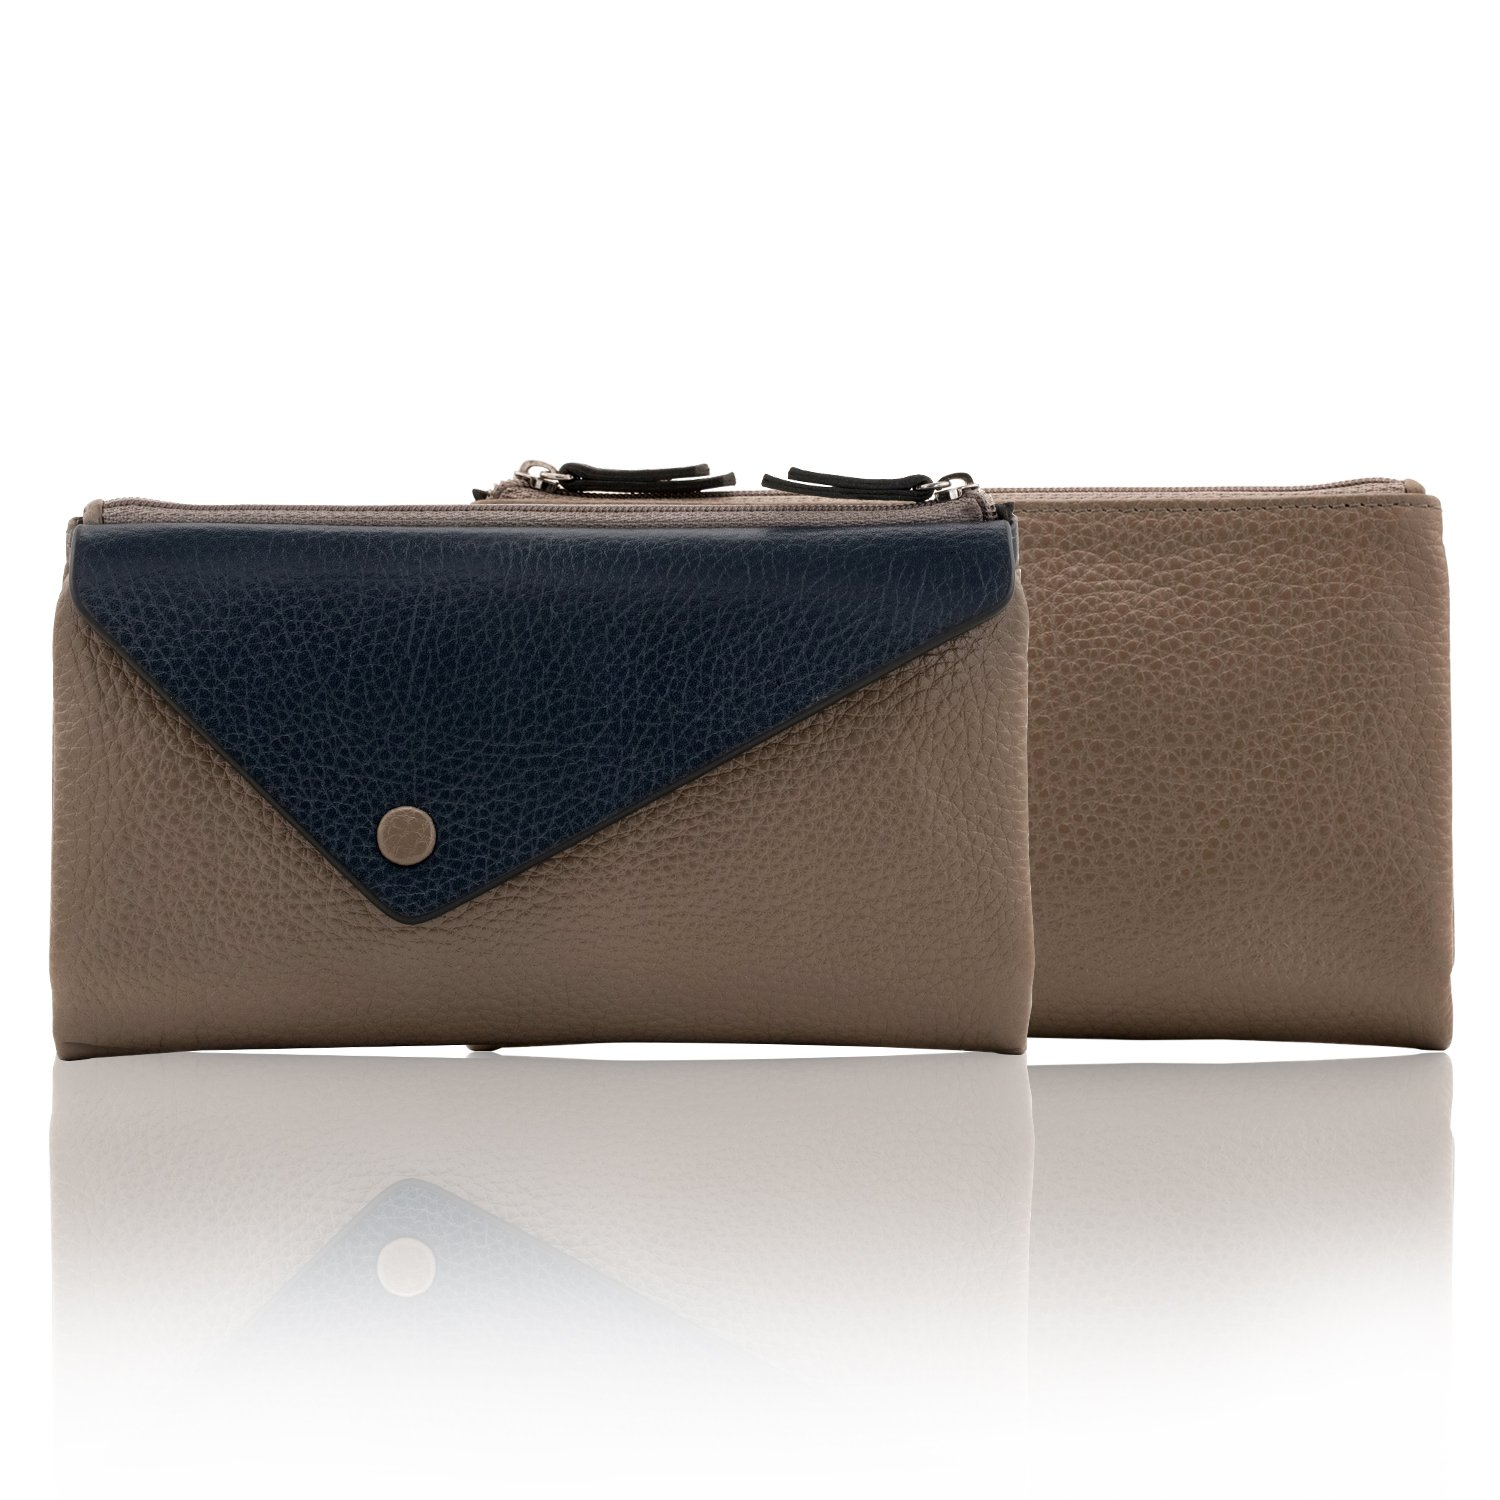 OTTO Genuine Leather Envelope Wallet with Phone Compatible Slots - RFID Blocking - Unisex (Navy Blue & Mink) by OTTO Leather (Image #6)